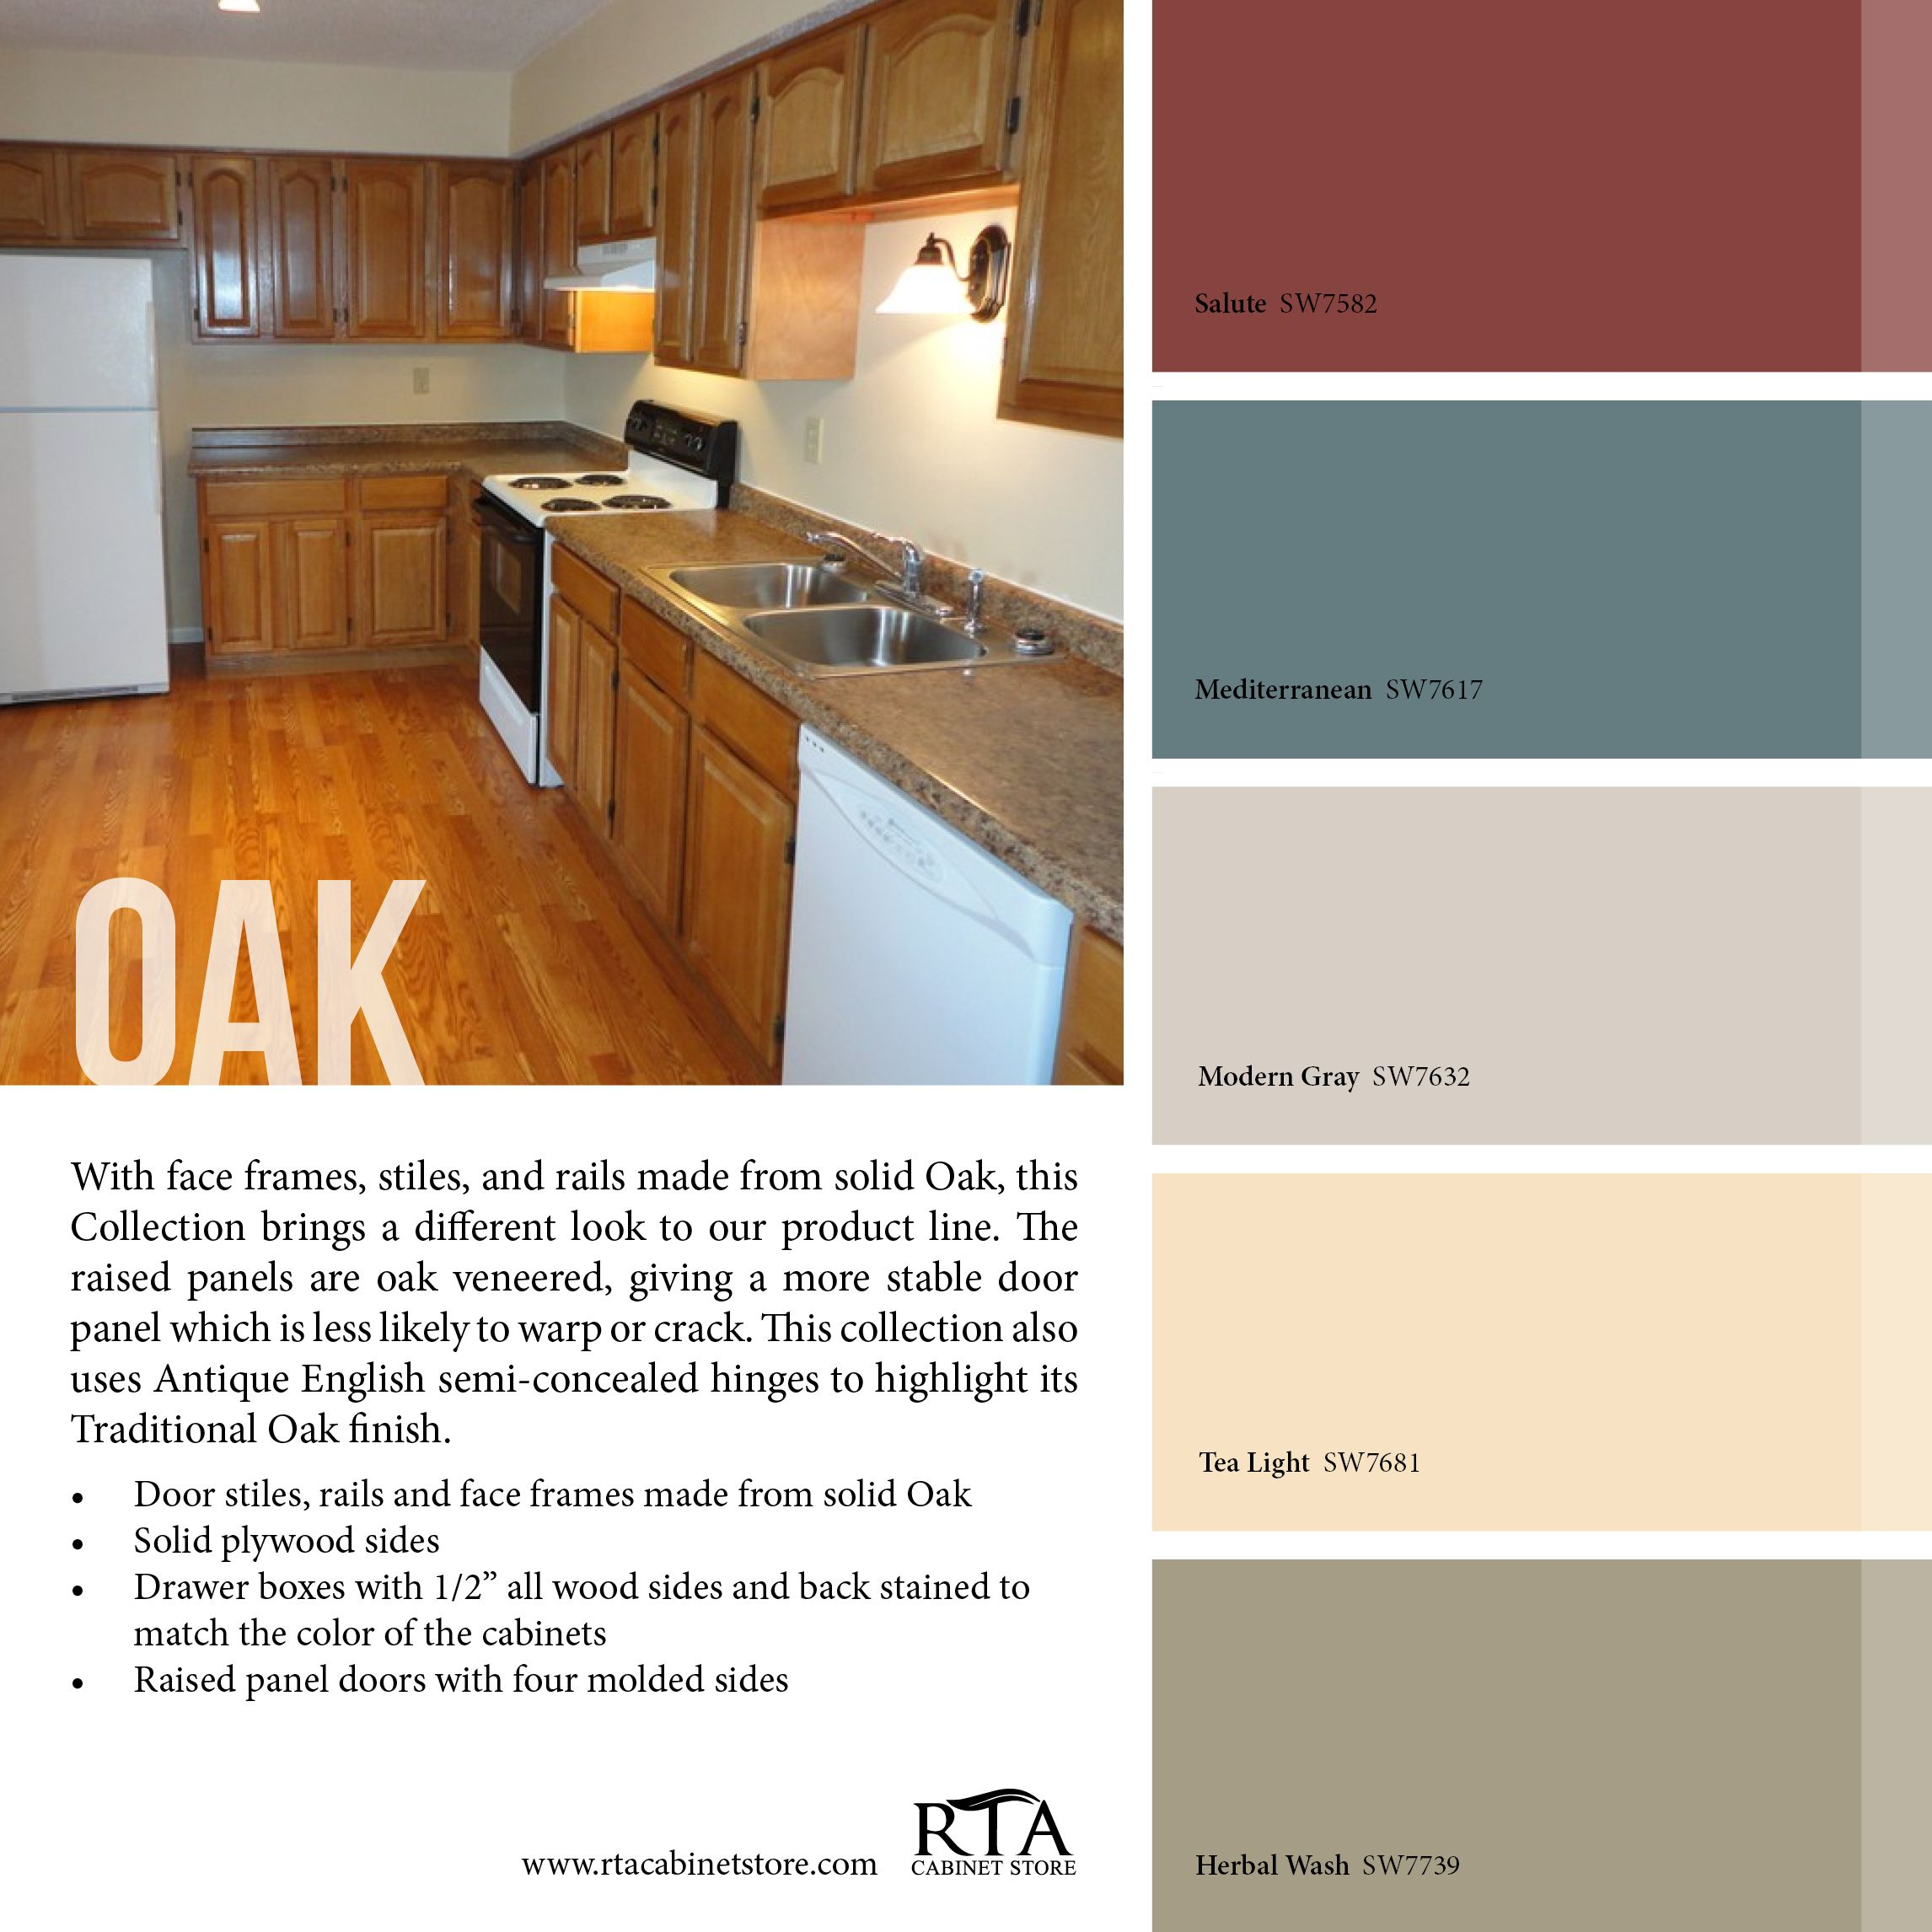 Best Kitchen Gallery: Color Palette To Go With Oak Kitchen Cabi Line For Those With of Paint Colors For Kitchens With Golden Oak Cabinets on rachelxblog.com